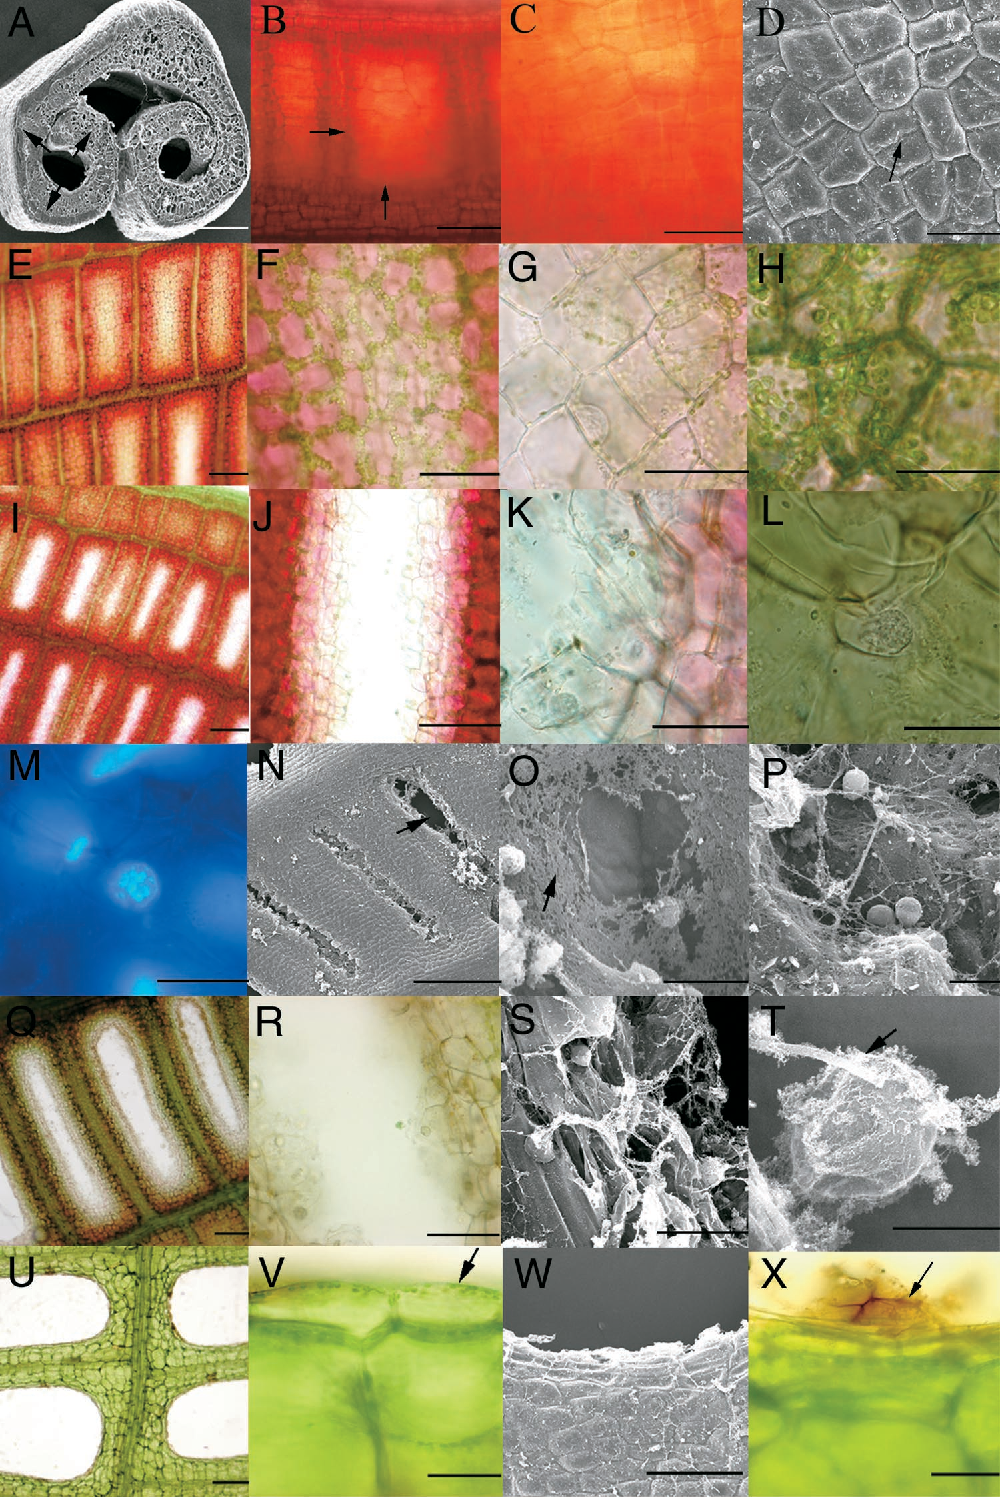 Figure 2. Light Micrographs of Living Leaves and Scanning Electron Micrographs of Fixed Tissue Illustrating the Stages of Perforation Formation in Lace Plant.